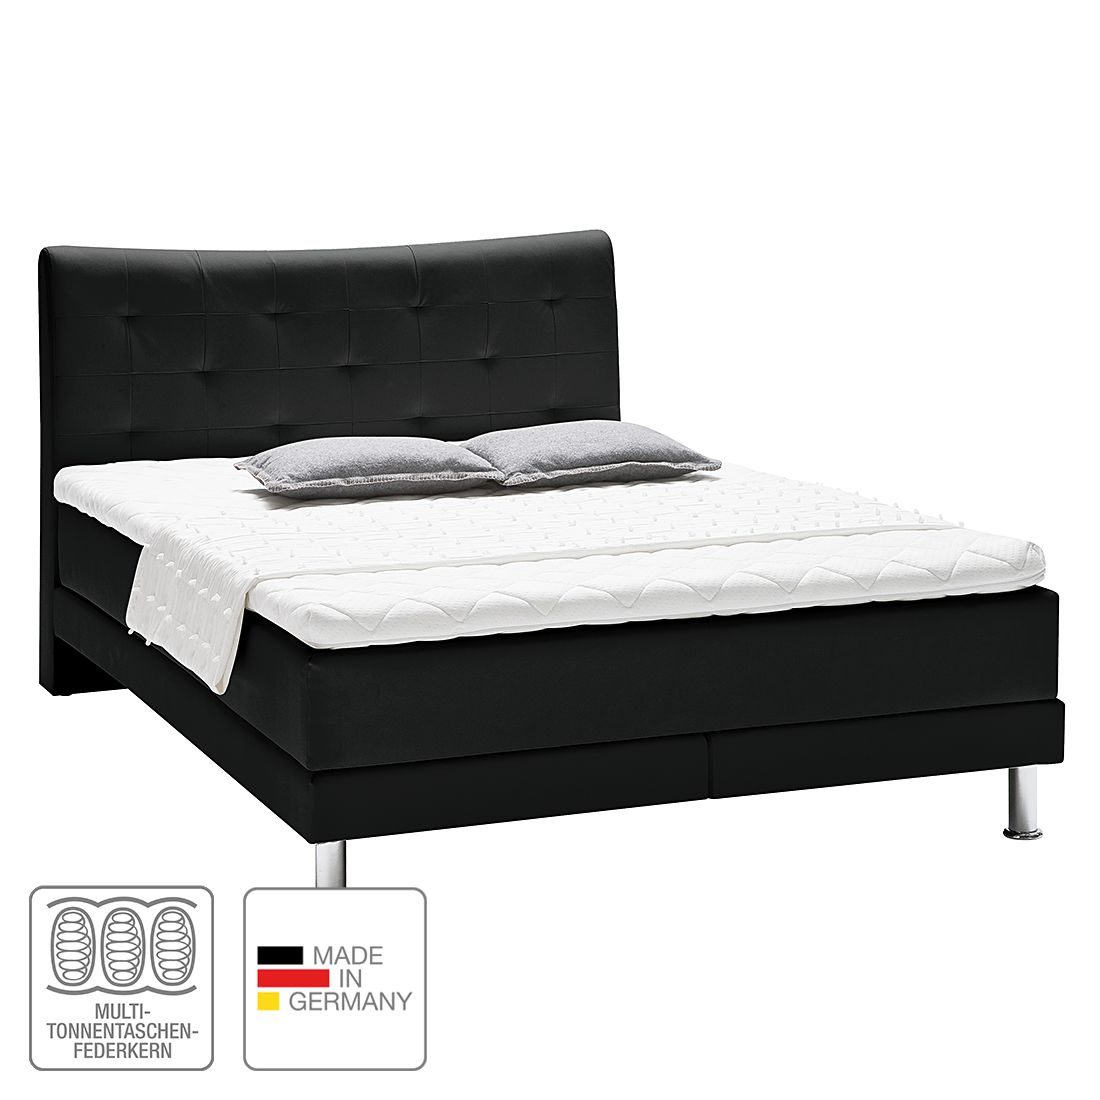 boxspringbett vega kunstleder 120 x 200cm h2 bis 80 kg kaltschaumtopper multi. Black Bedroom Furniture Sets. Home Design Ideas